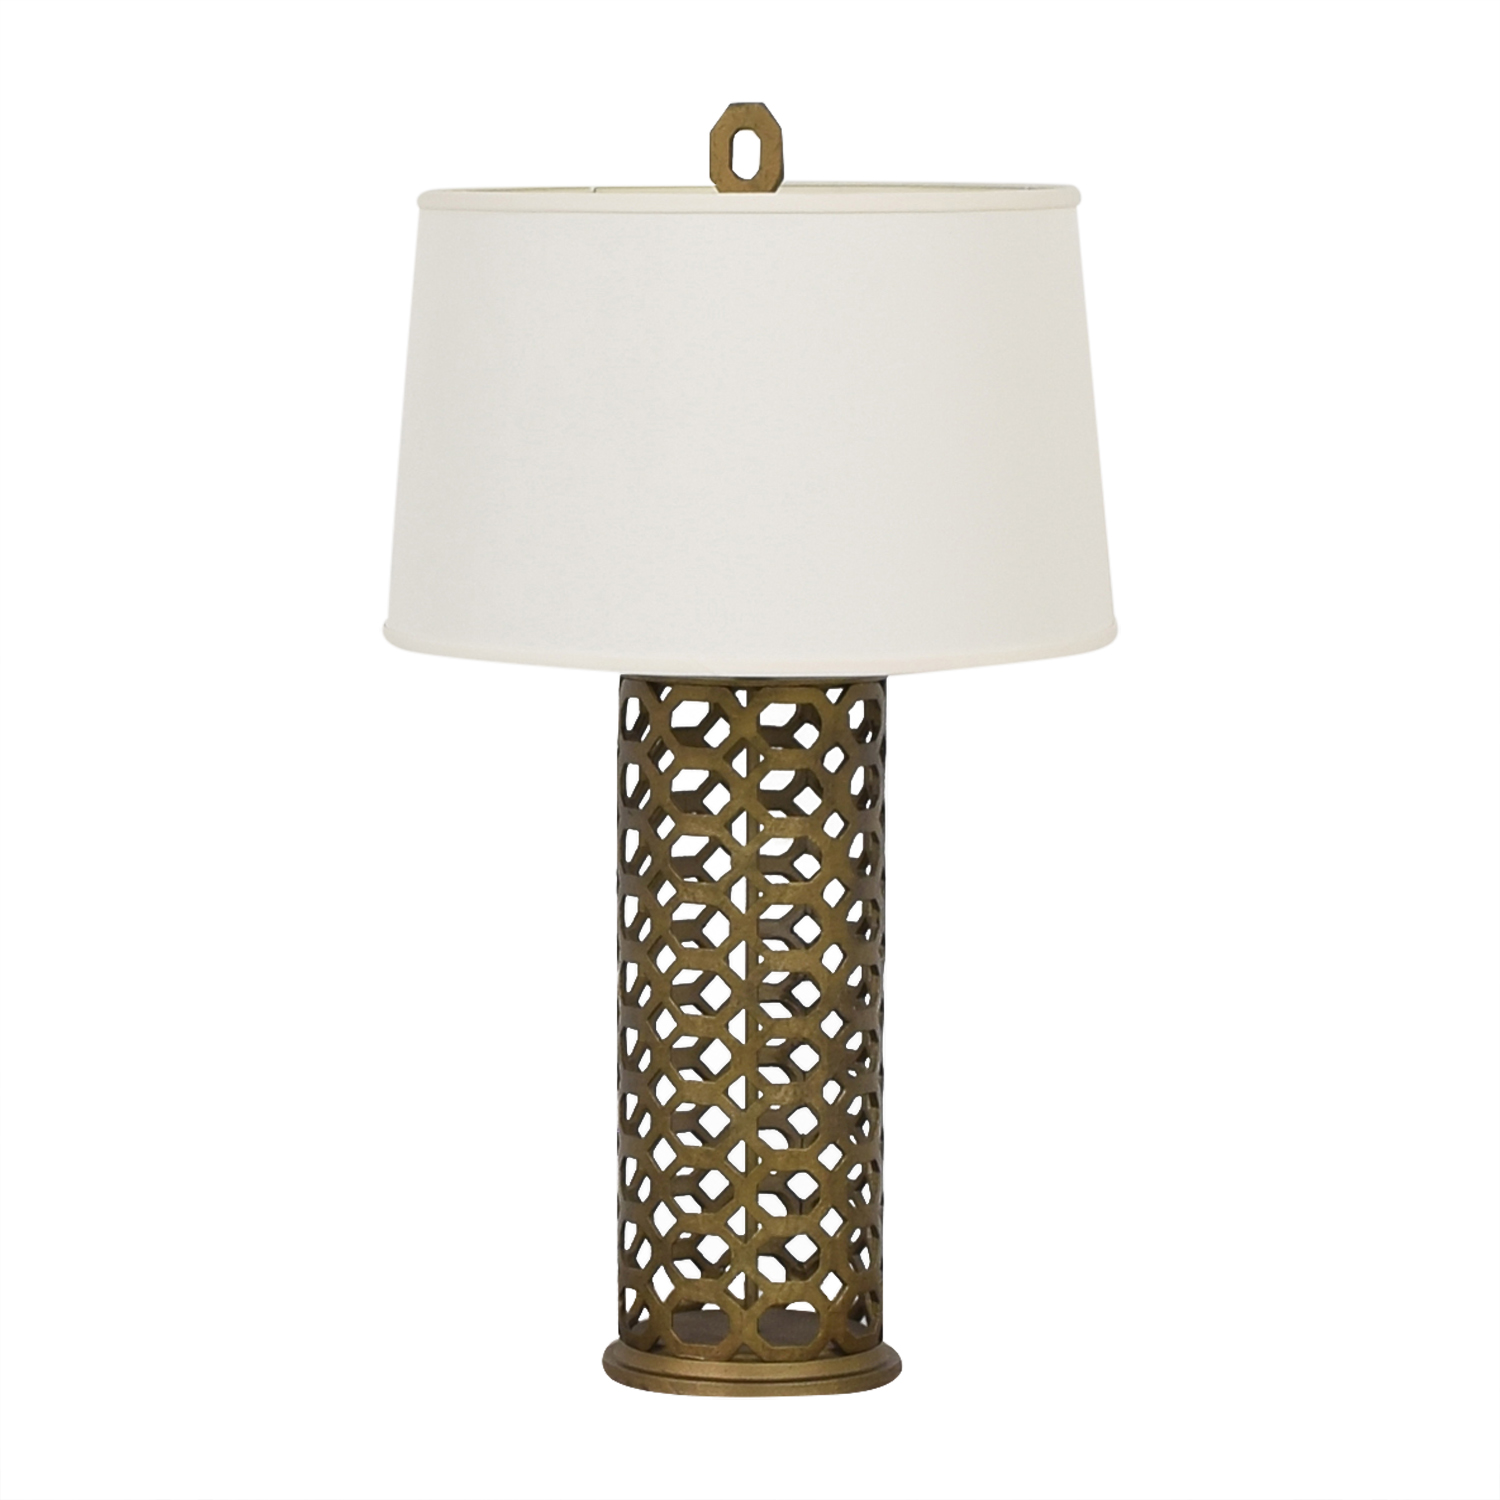 Ethan Allen Ethan Allen Caira Table Lamp price